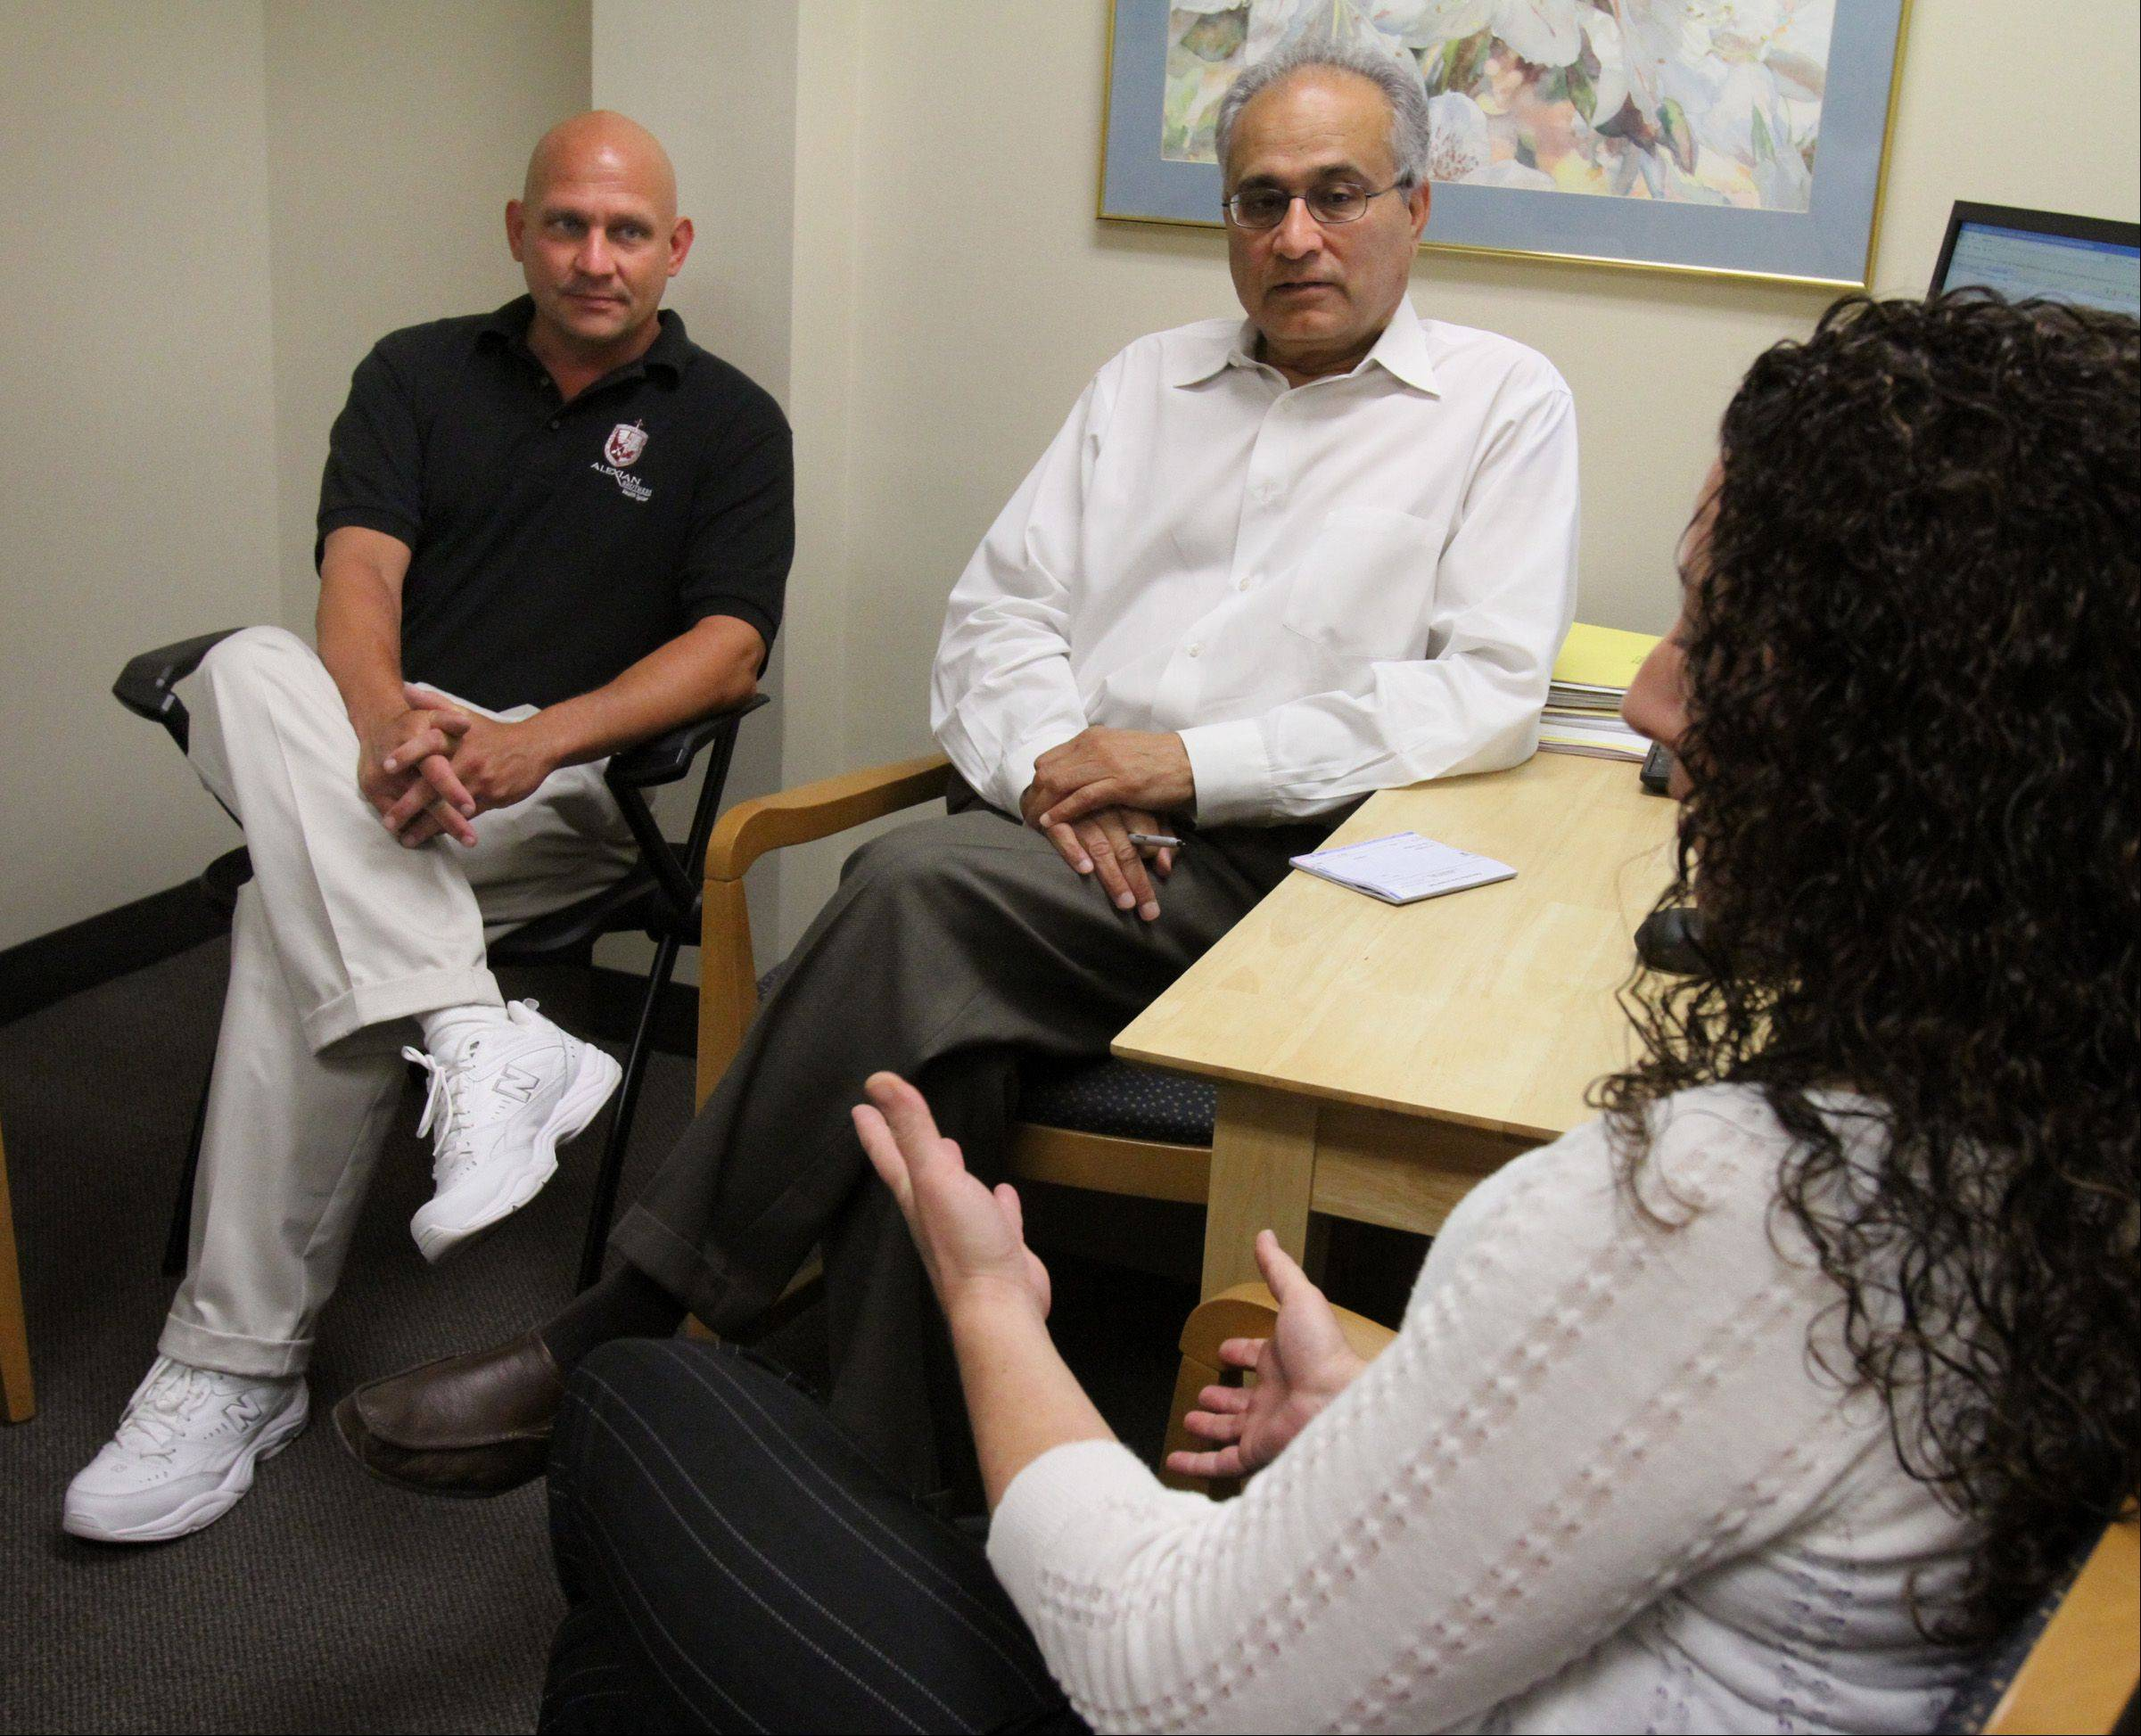 Dr. Deepak Kapoor, medical director for the Partial Hospitalization Program, center, talks with Katie Connolly, PHP team leader, right, and Rick Germann, director of operations at the Alexian Brothers Center for Mental Health in Arlington Heights on Wednesday.